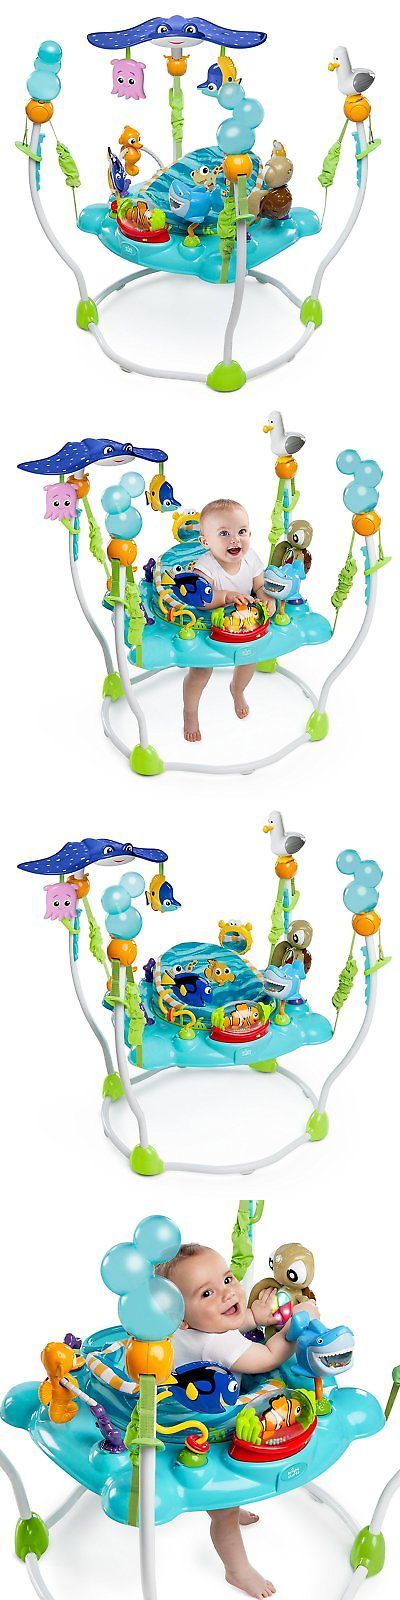 Baby Jumping Exercisers 117032: Baby Finding Nemo Activity Seat Jumper Bouncer Jumperoo Exersaucer Toy Station -> BUY IT NOW ONLY: $133 on eBay!